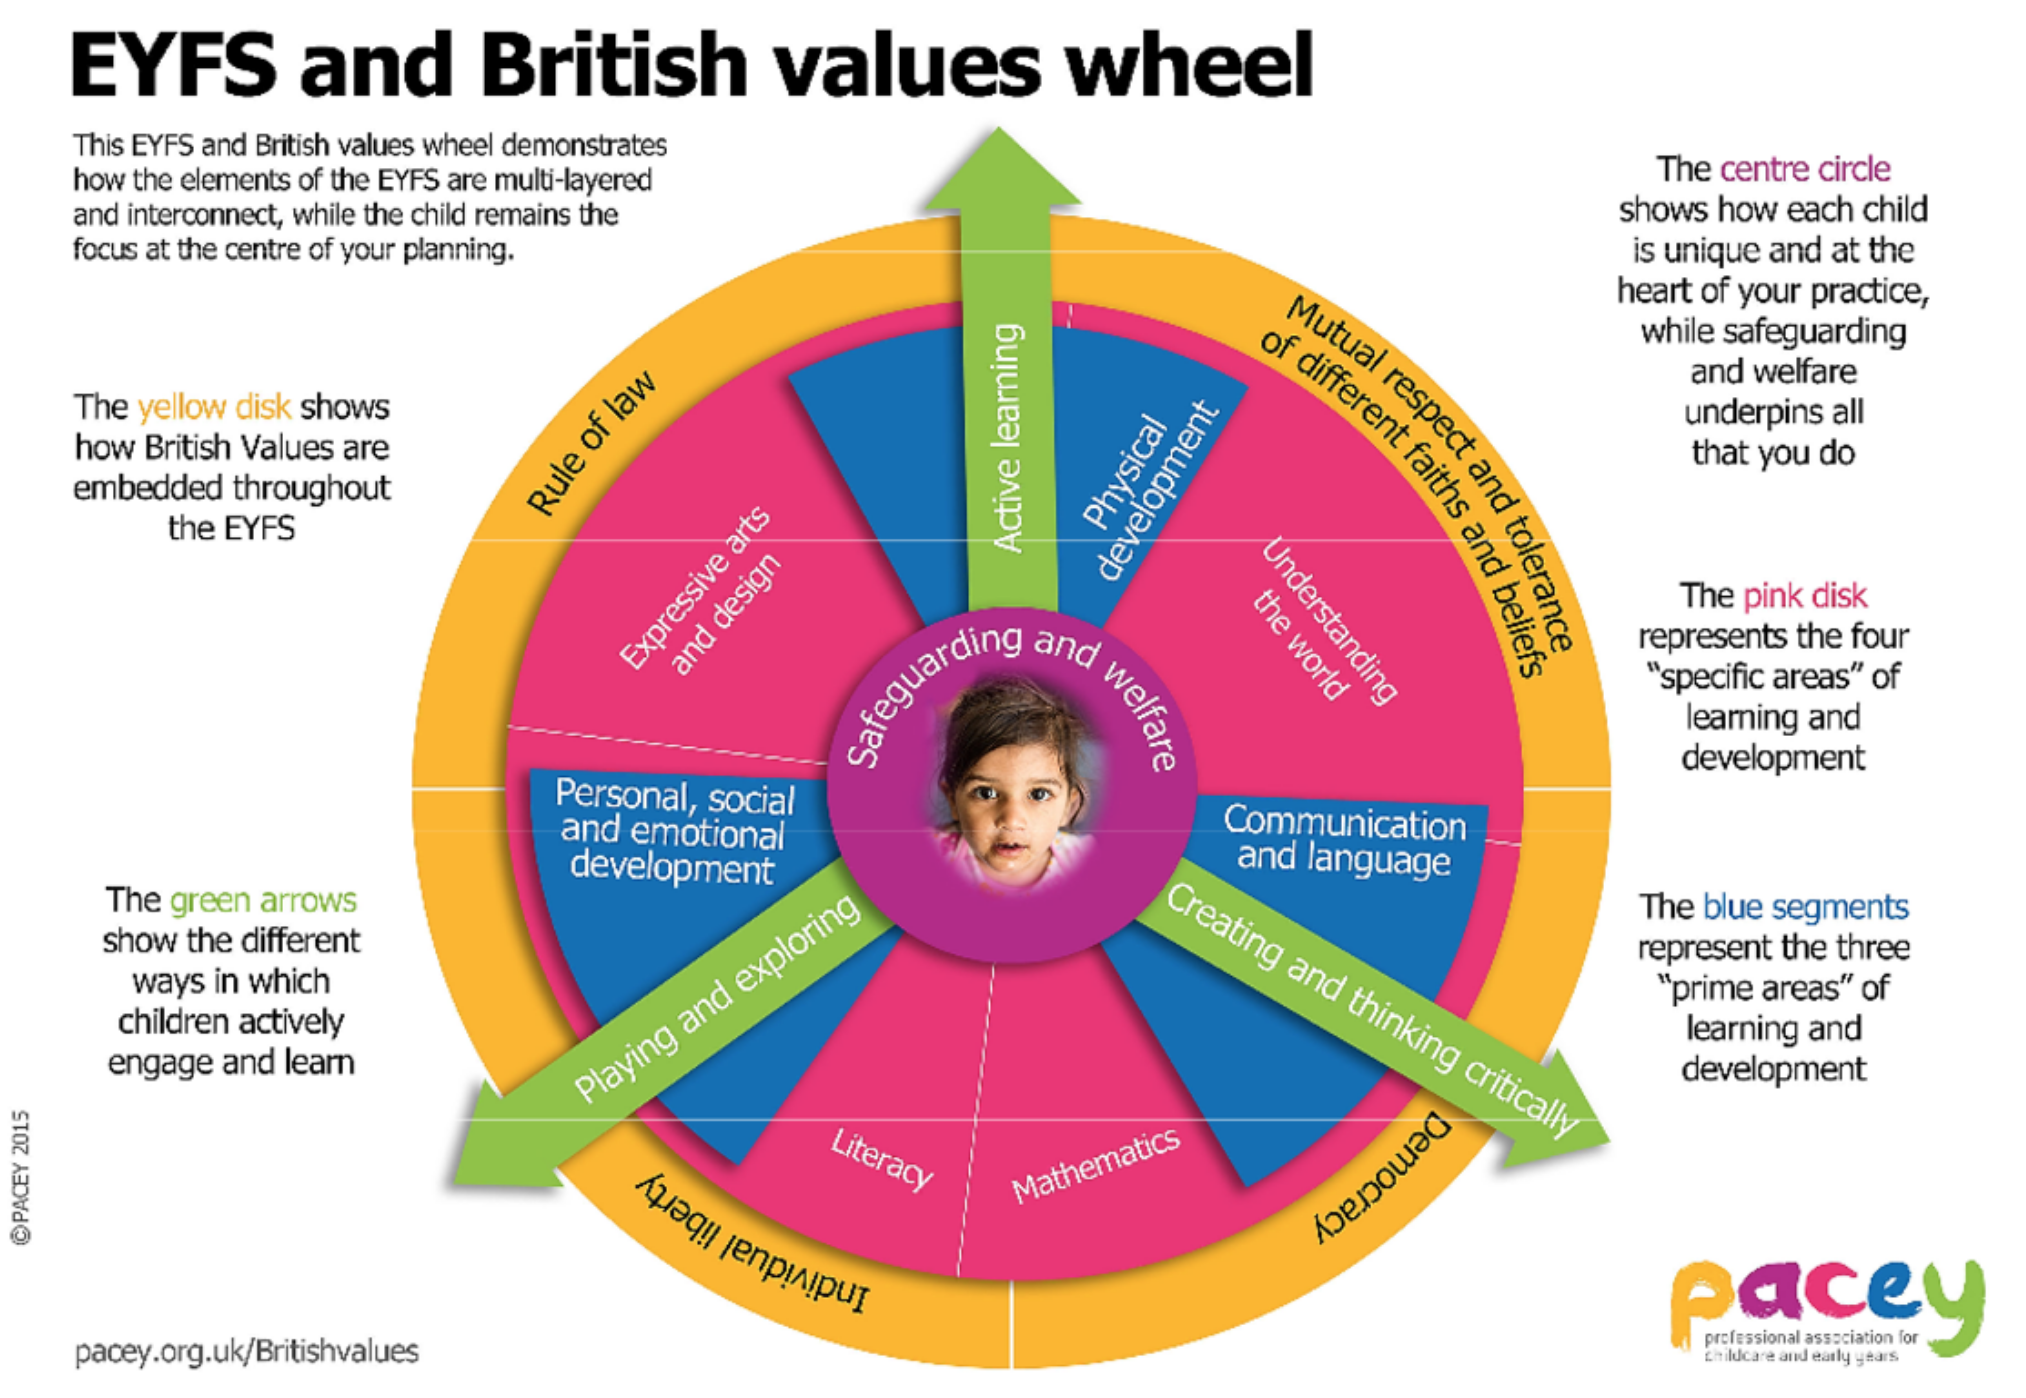 Pacey's British Values Wheel